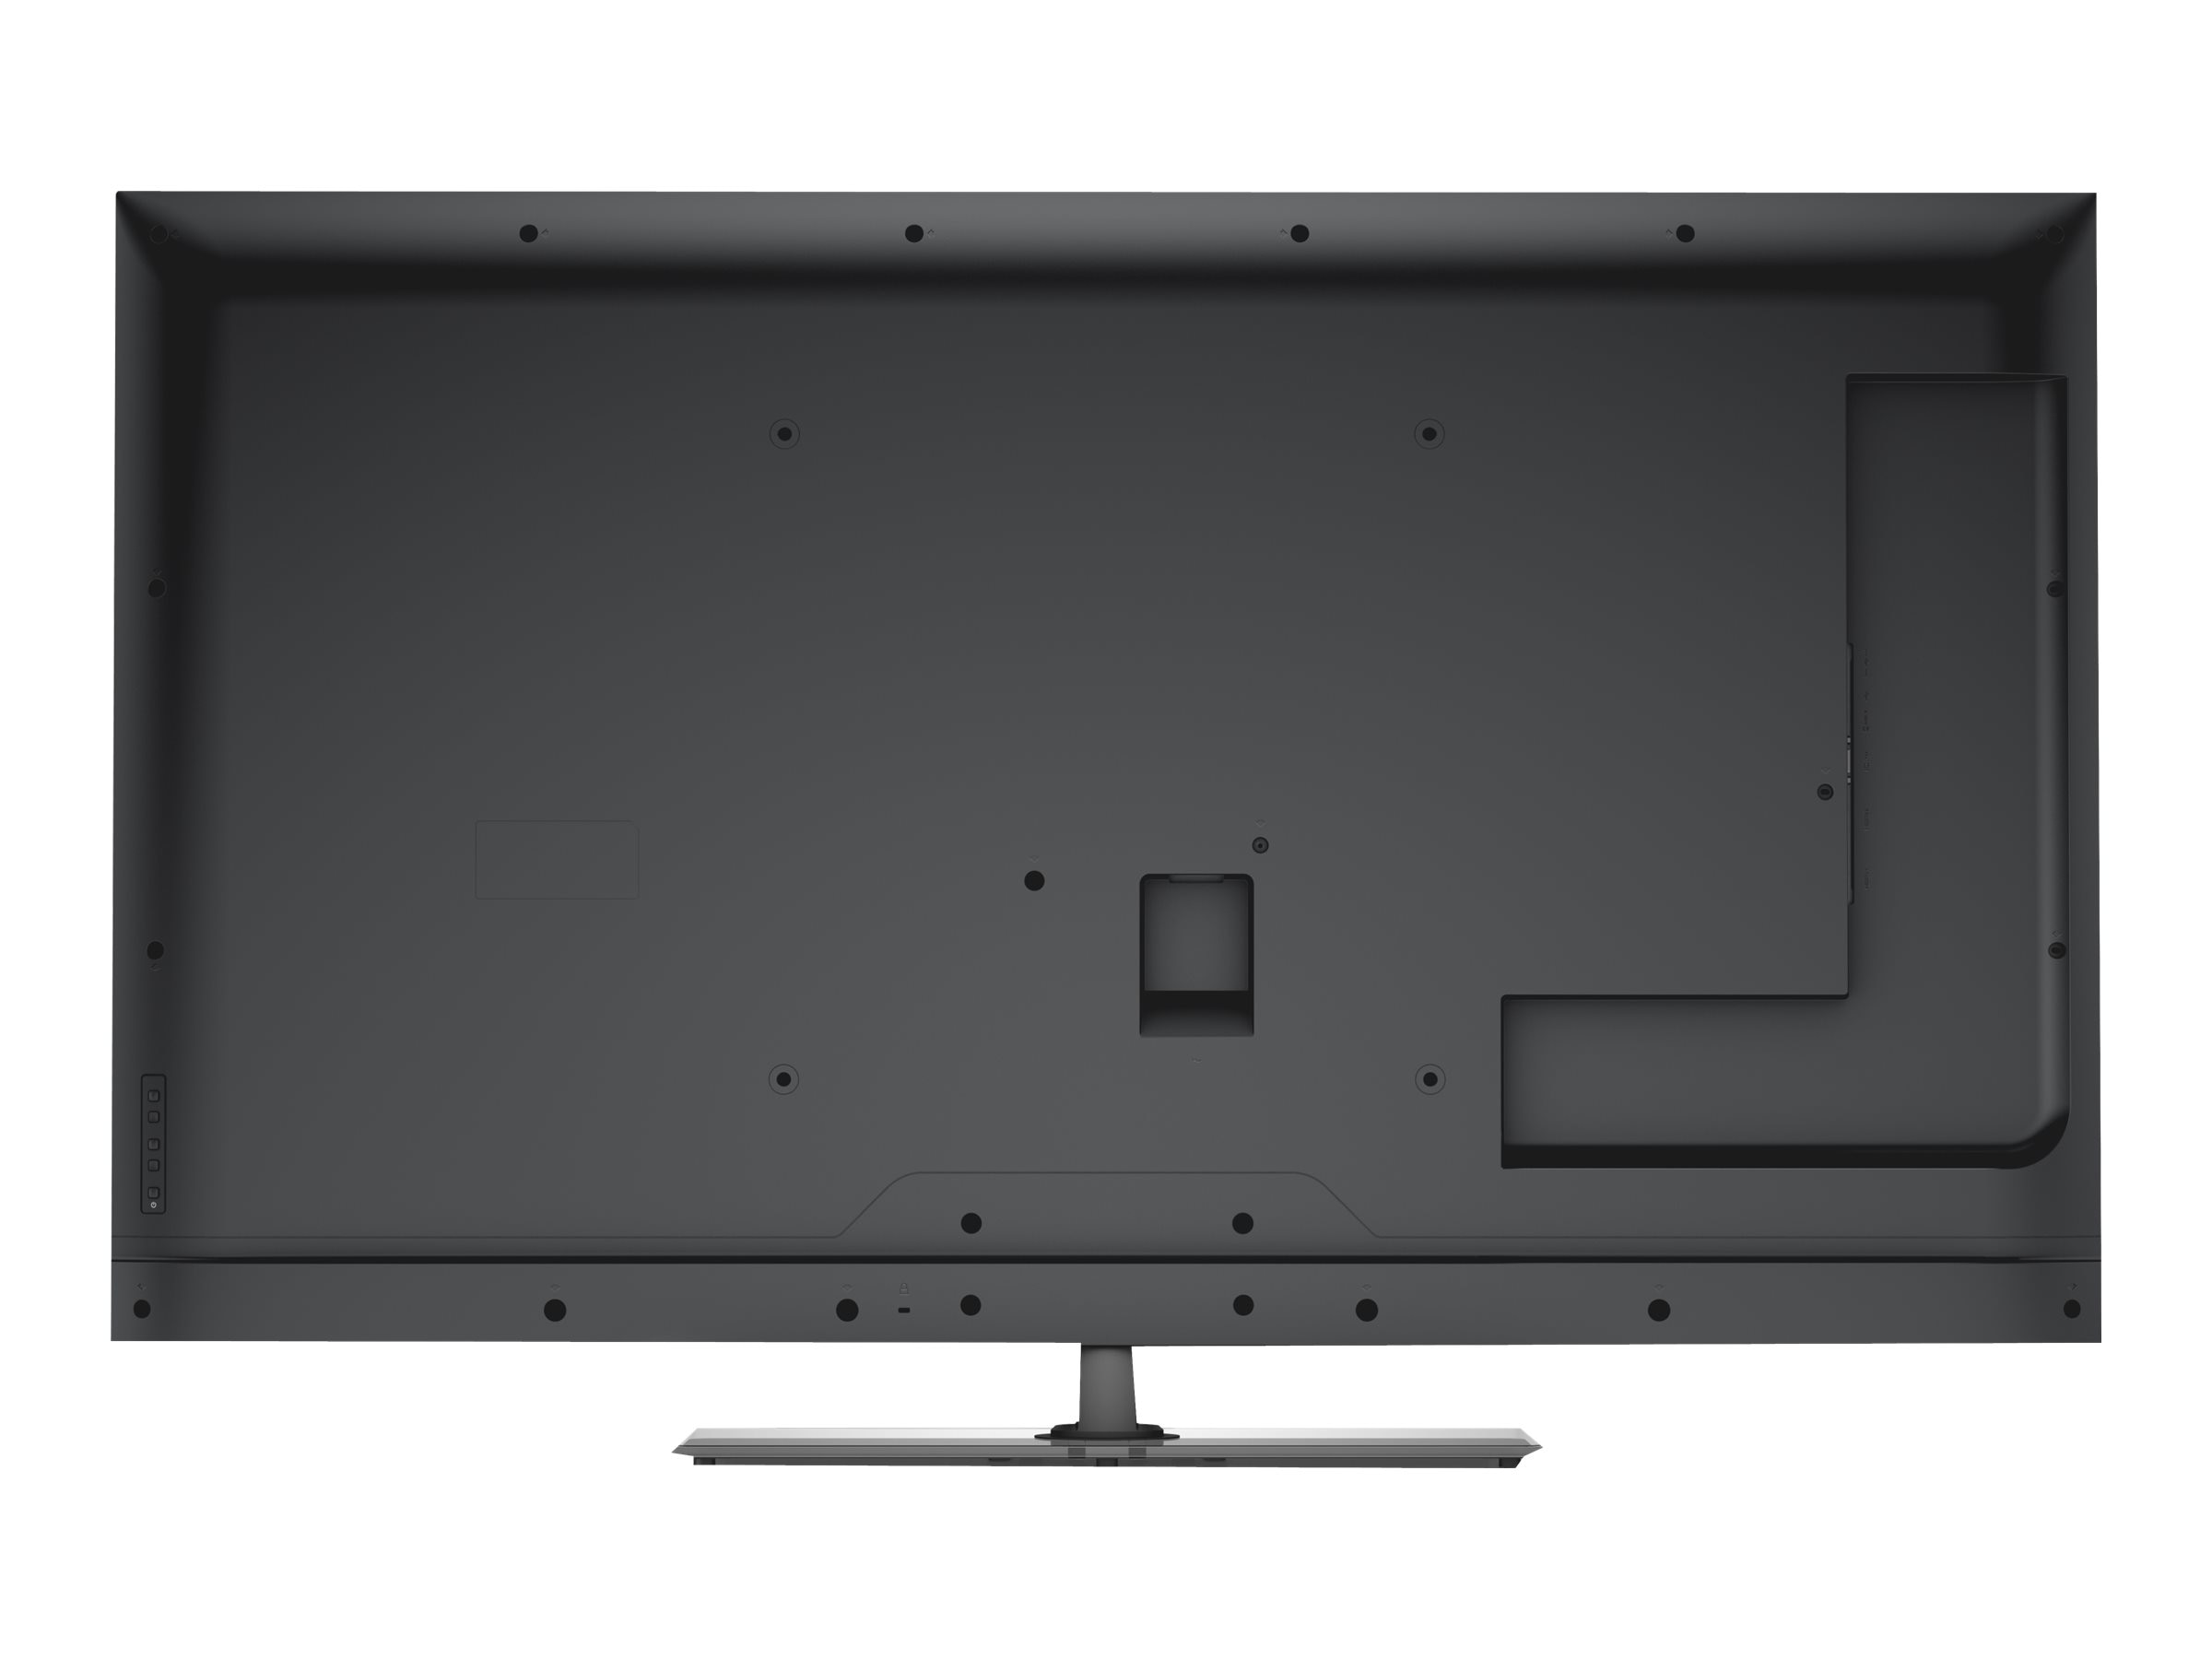 Dell 54.6 E5515H Full HD LED-LCD Monitor, Black, E5515H